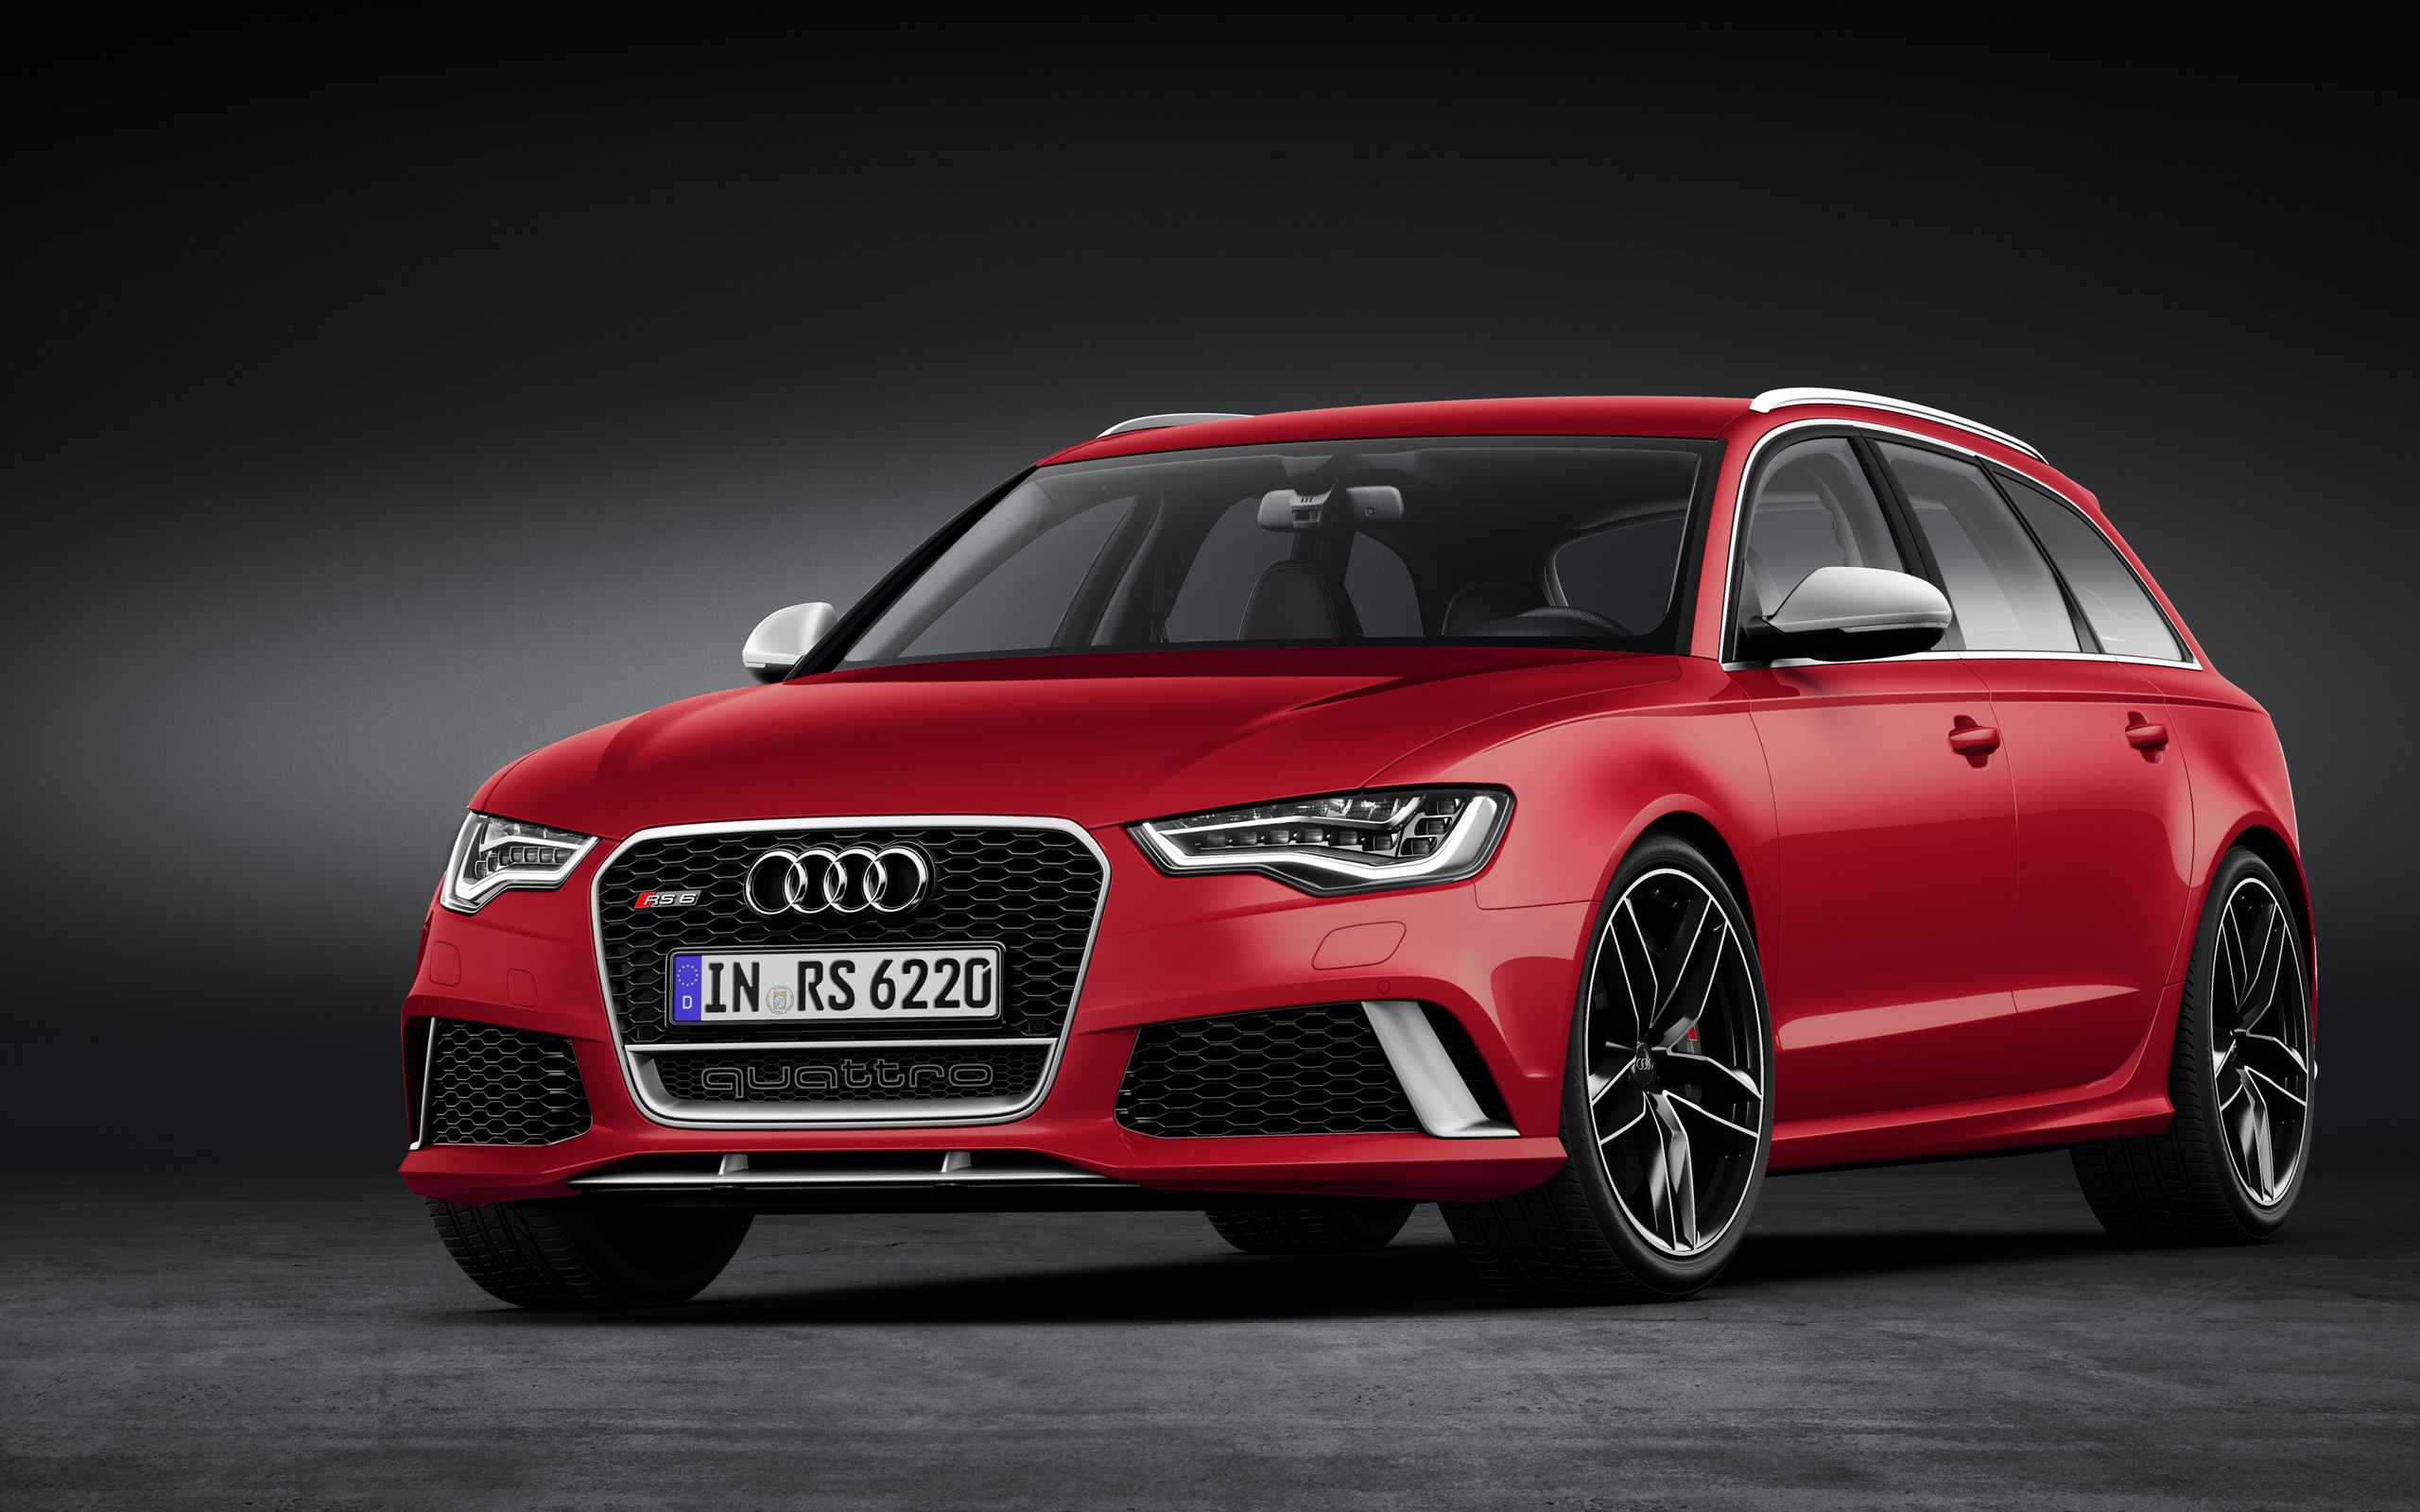 2013 Audi Rs6 Avant 750x1334 Iphone 8 7 6 6s Wallpaper